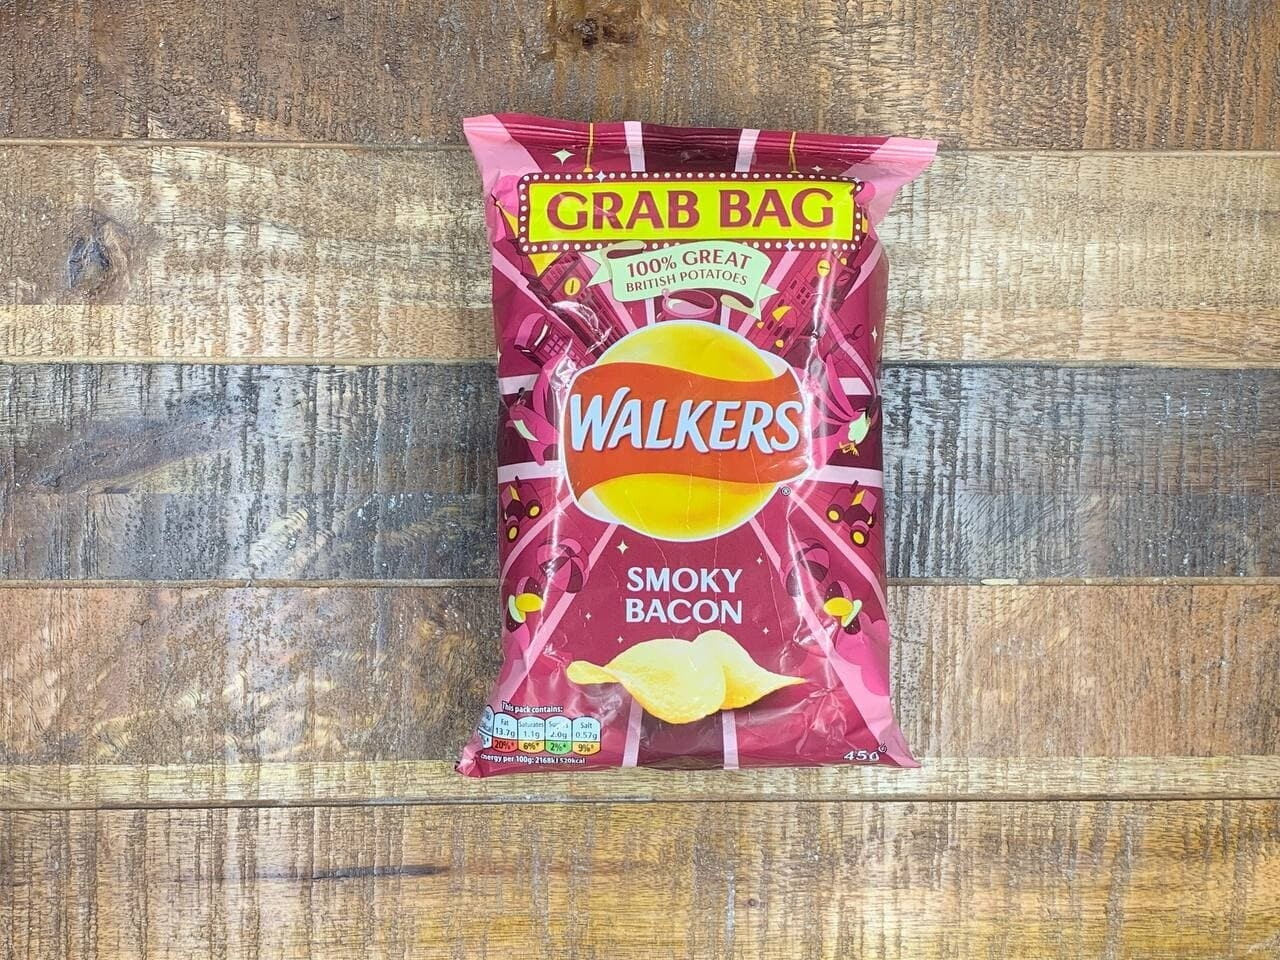 Walkers Smoky Bacon 45g